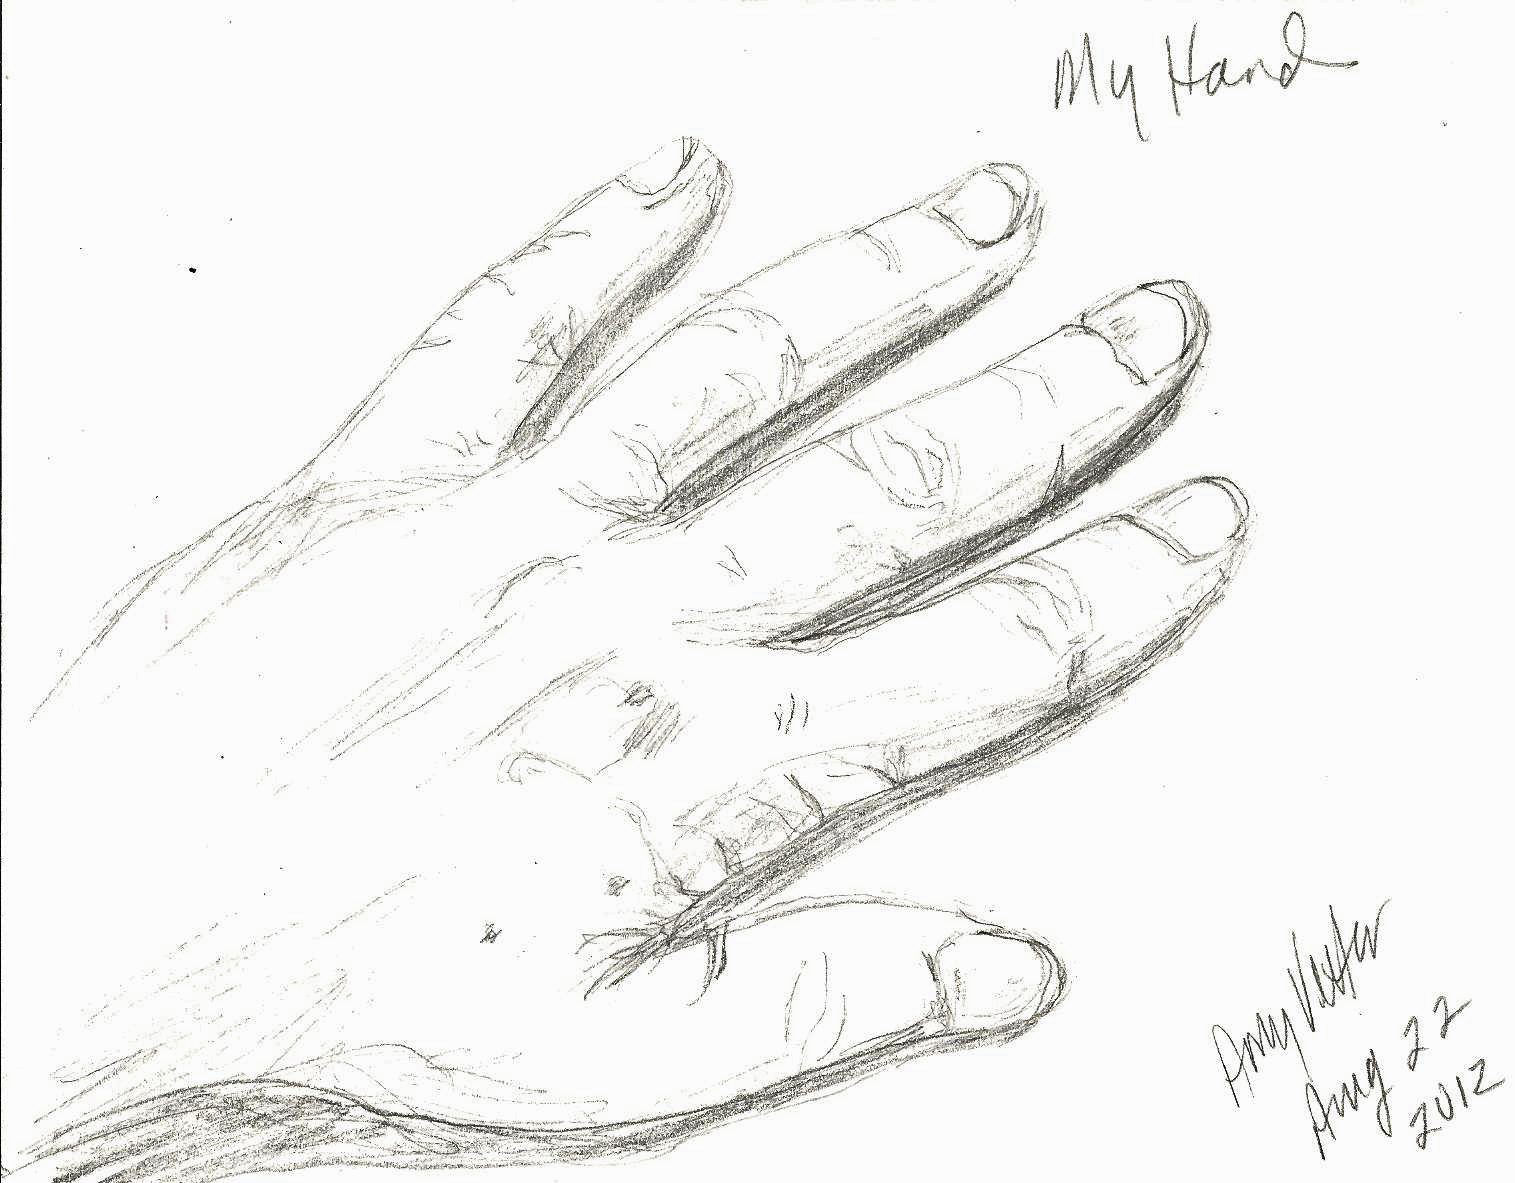 Hands drawn in pencil dating